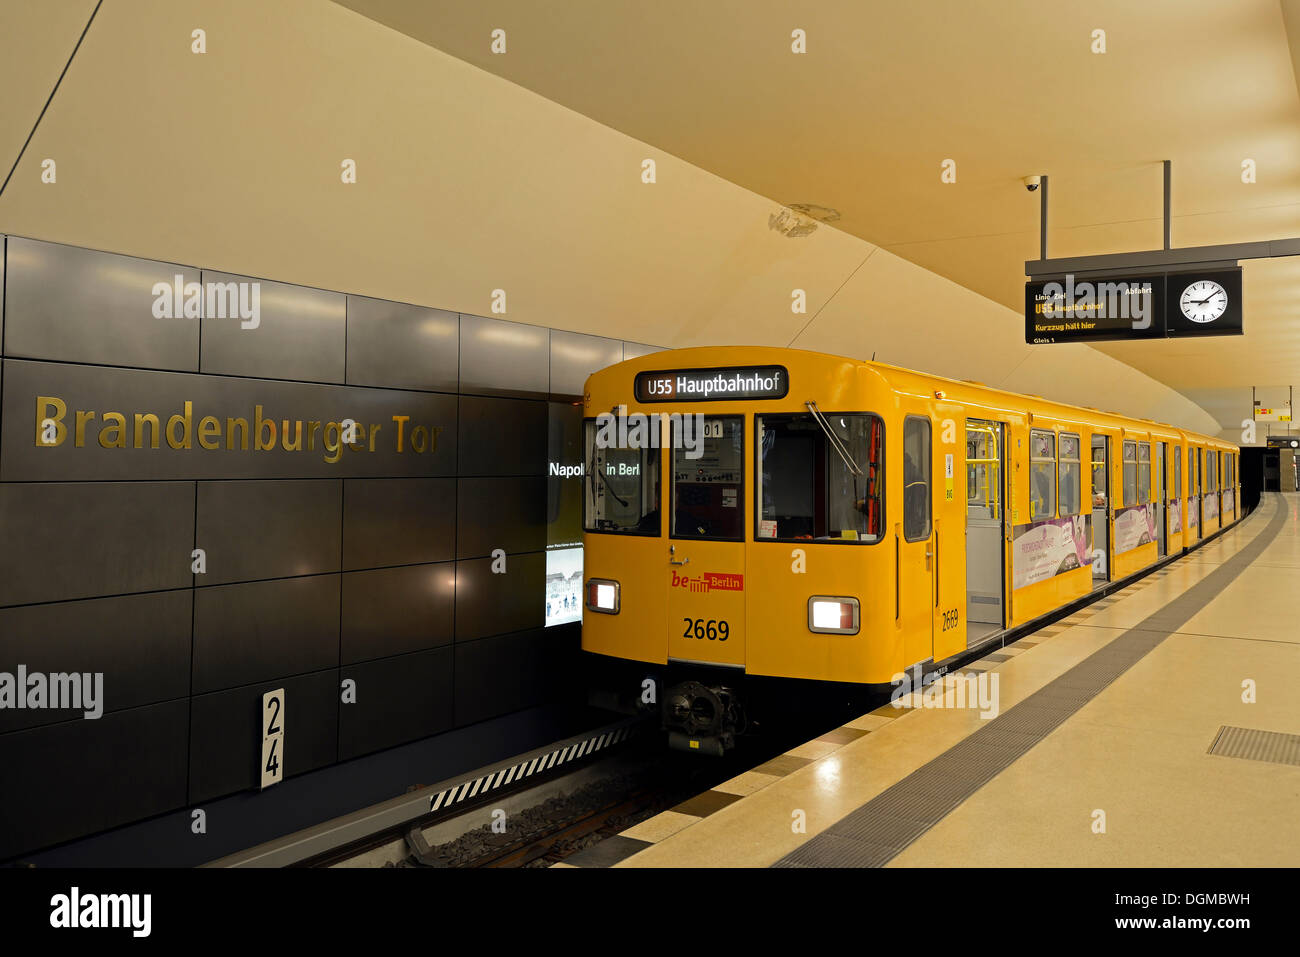 A Berlin underground train stopping at Brandenburg Gate station, Berlin, Berlin, Berlin, Germany - Stock Image